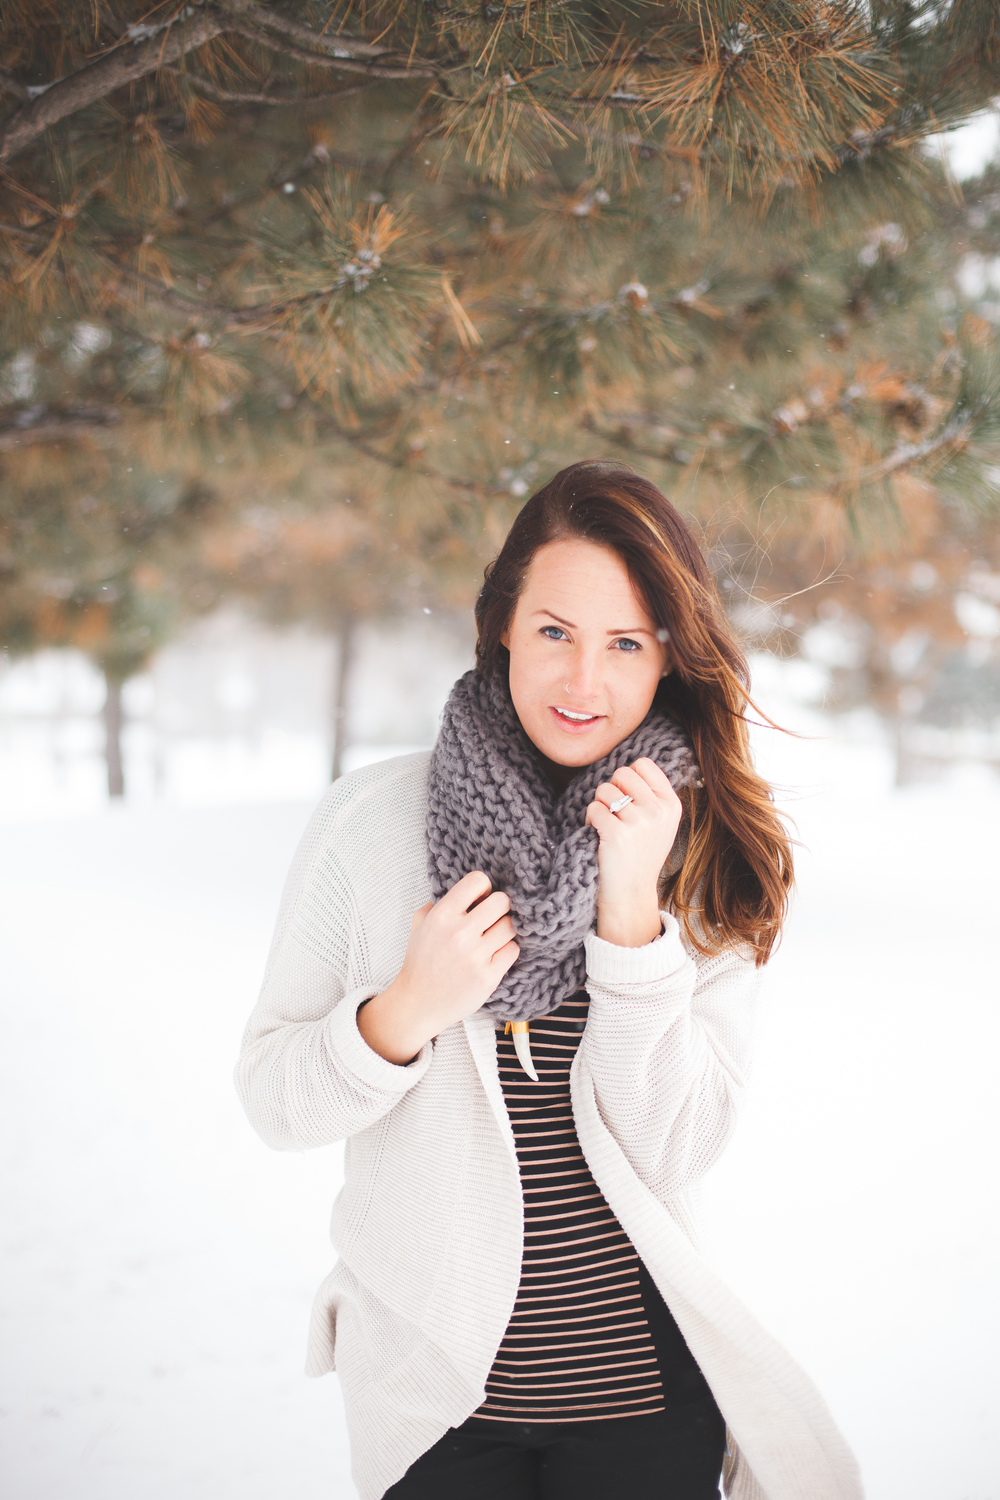 Portrait Photographer, Headshots, Portrait Photography, MN Portrait Photographer, MN Headshot Photographer, Snowy Portraits, Snowy Minnesota Portraits, Minnesota Snow Photography, Snow Portraits, Meg Ann Photography, Allison Hopperstad Photography